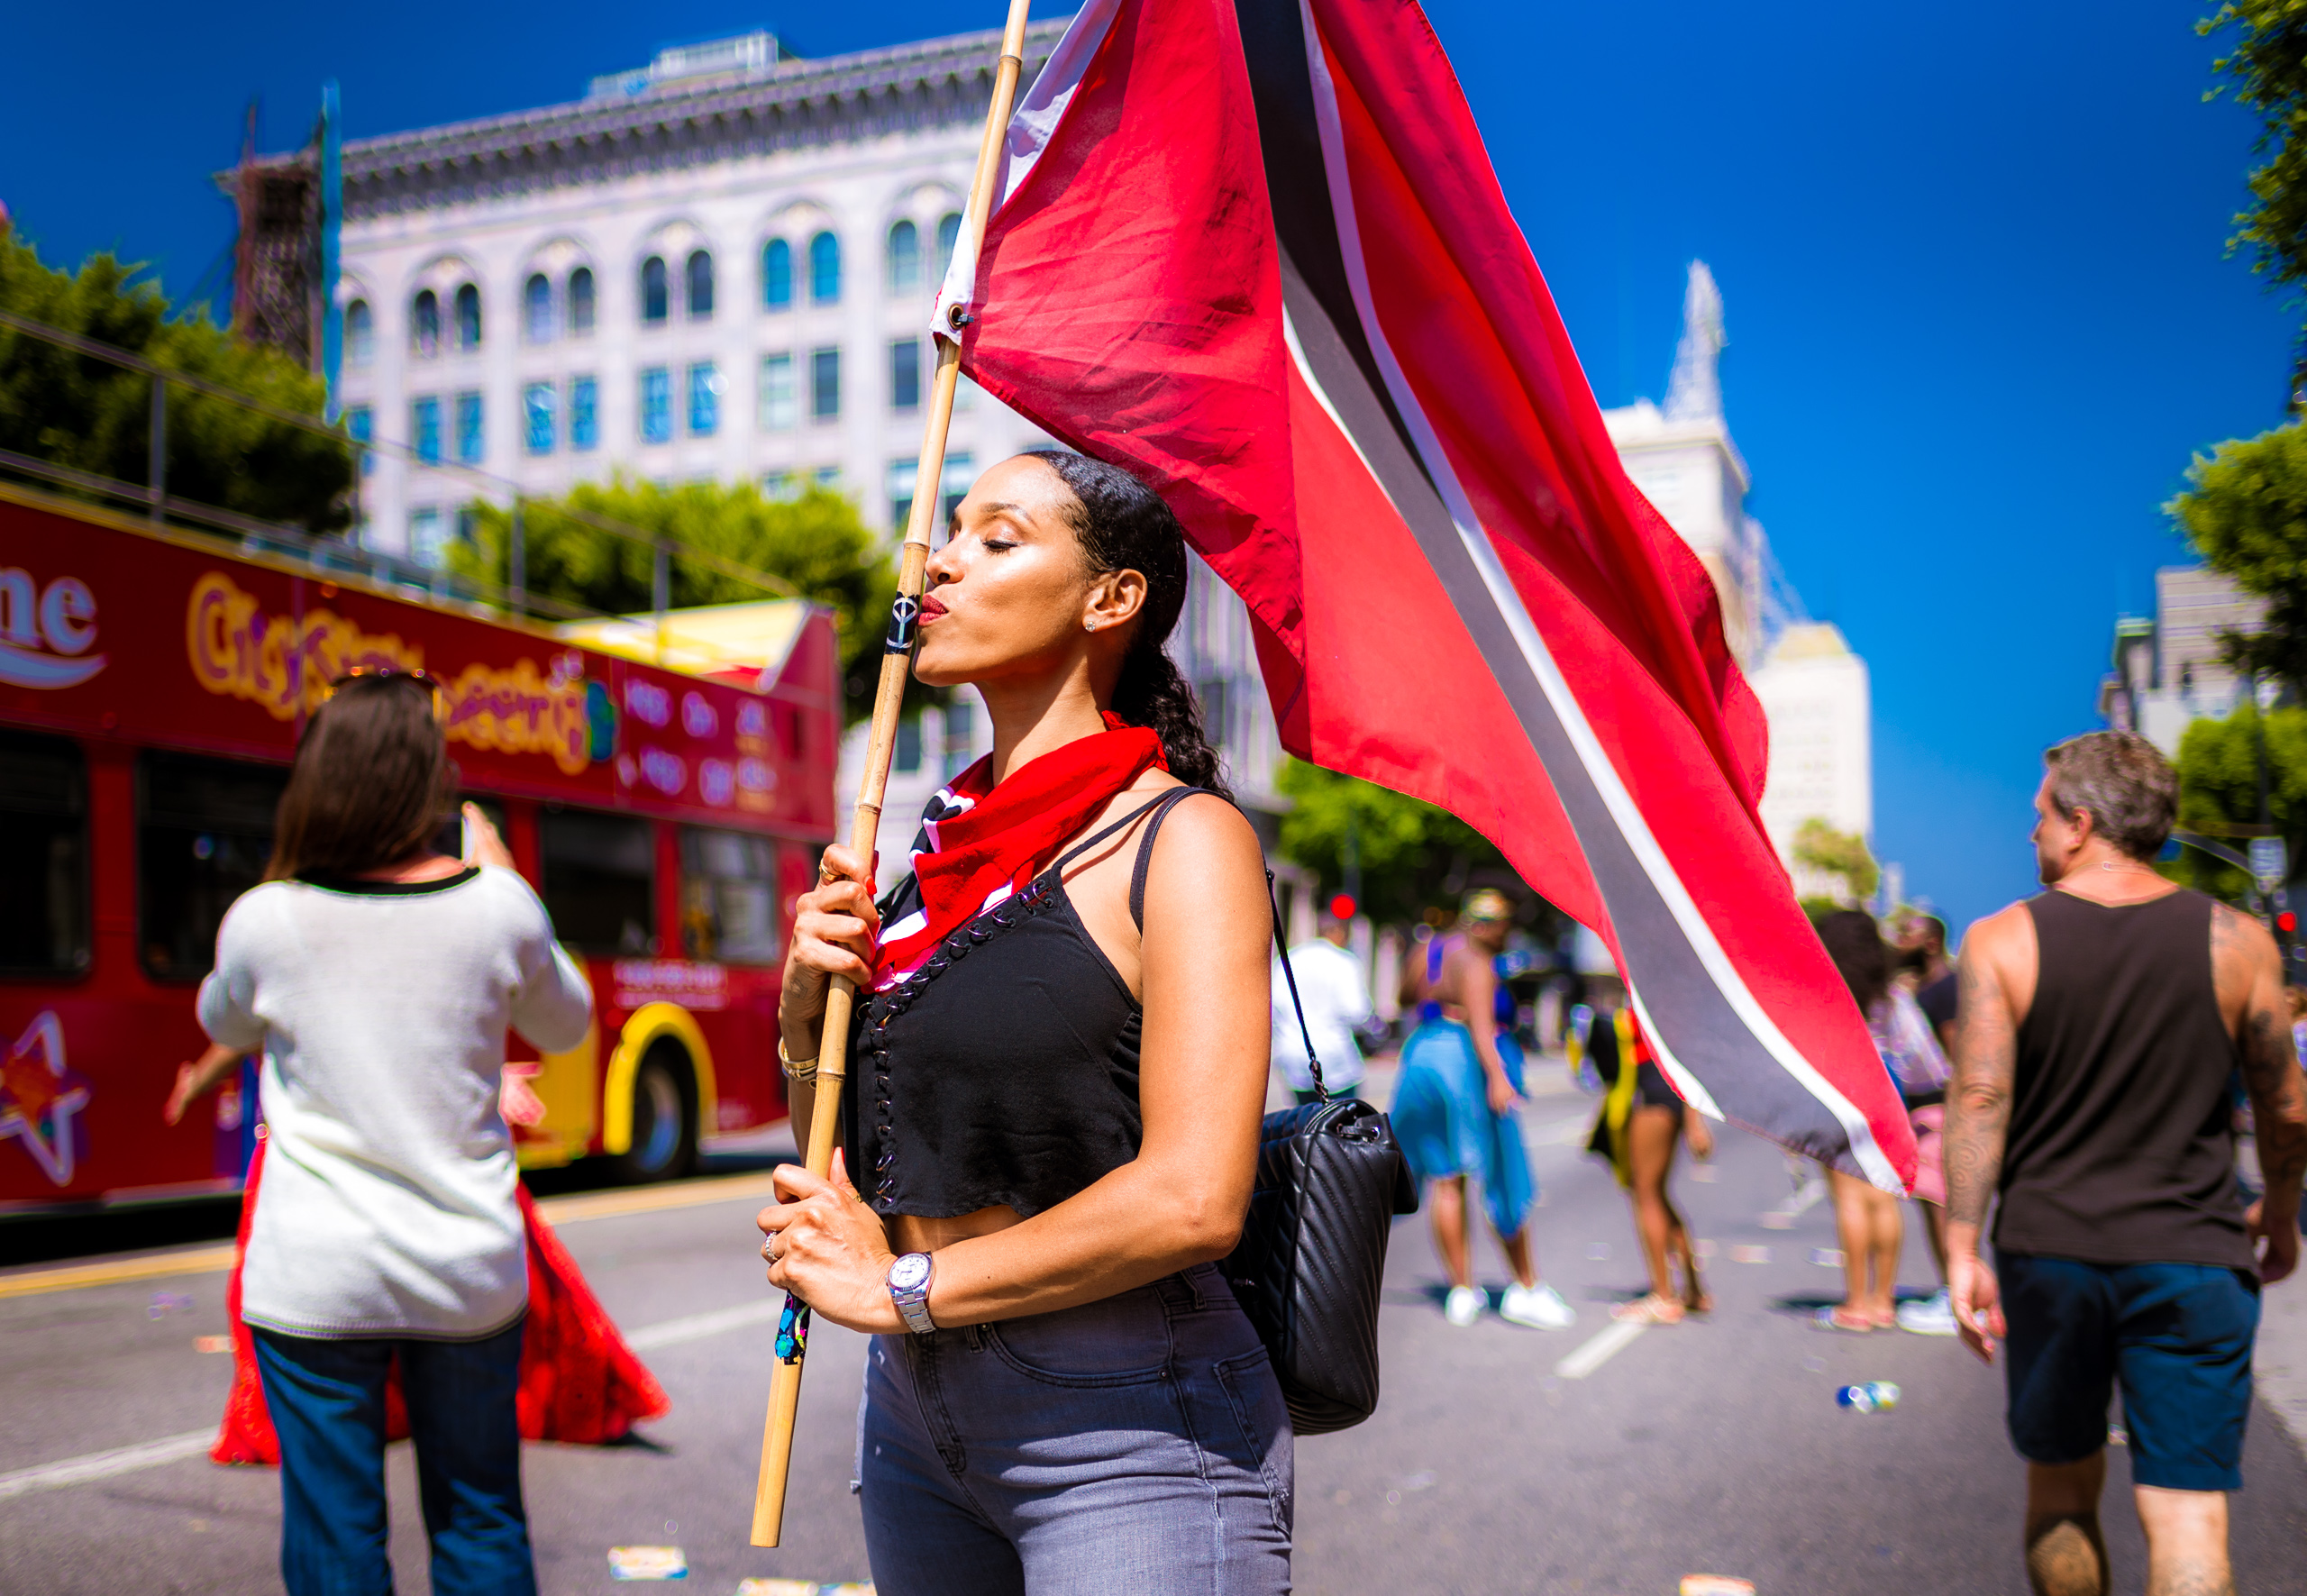 a woman on Hollywood Blvd holds a Trinidad & Tobago flag on a staff. Her eyes are closed as she kisses the staff.